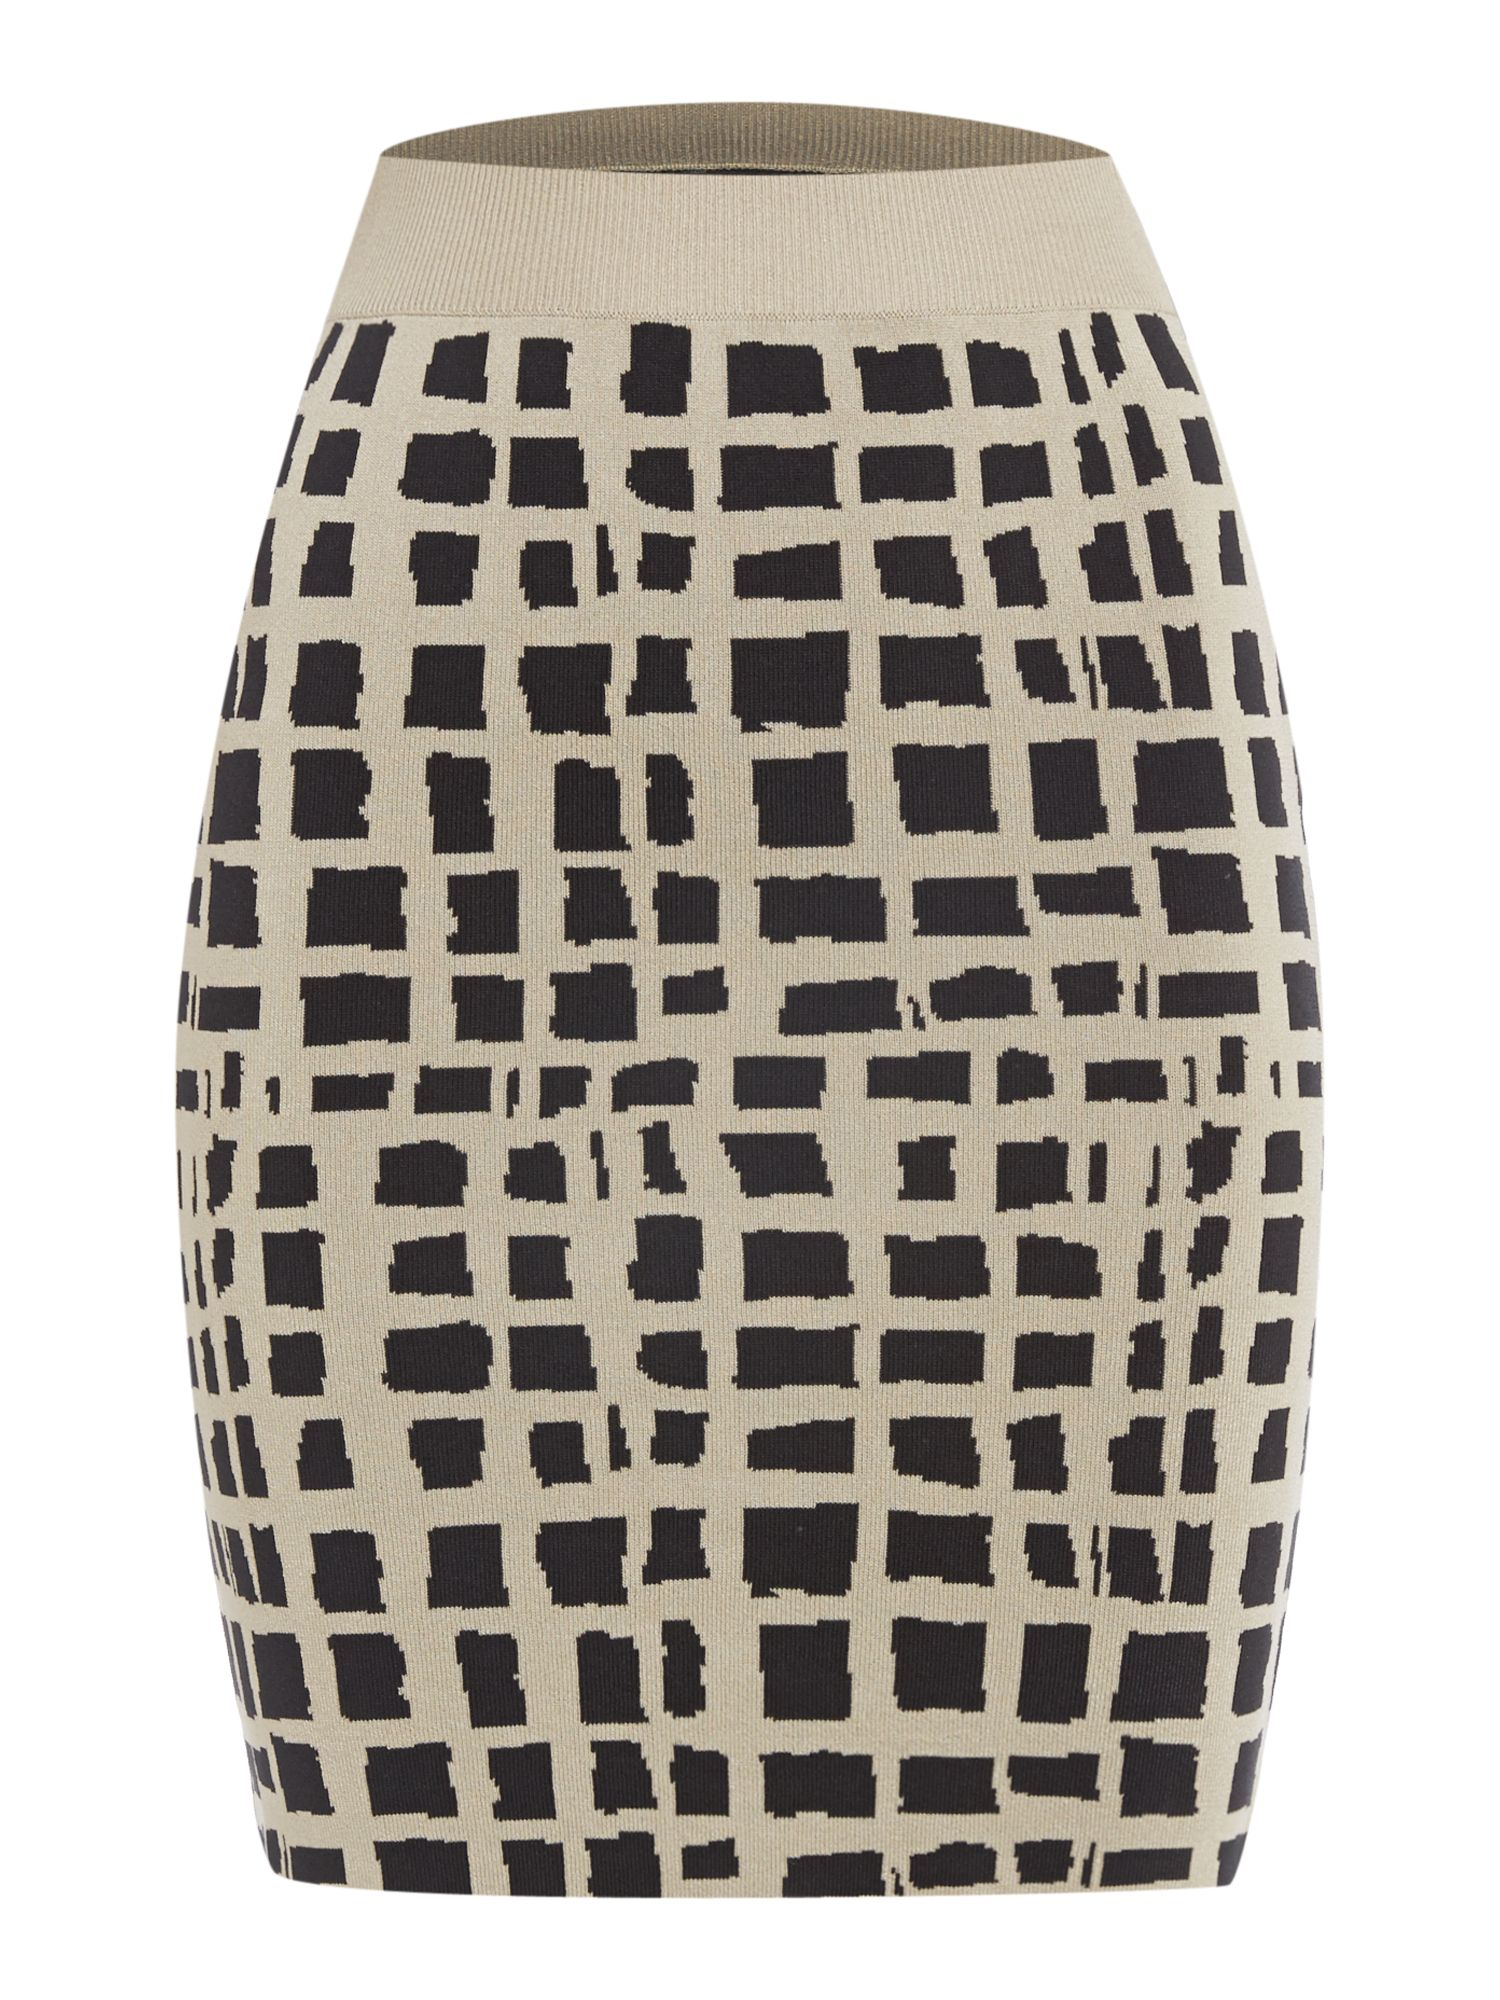 Jaquard stitch print skirt